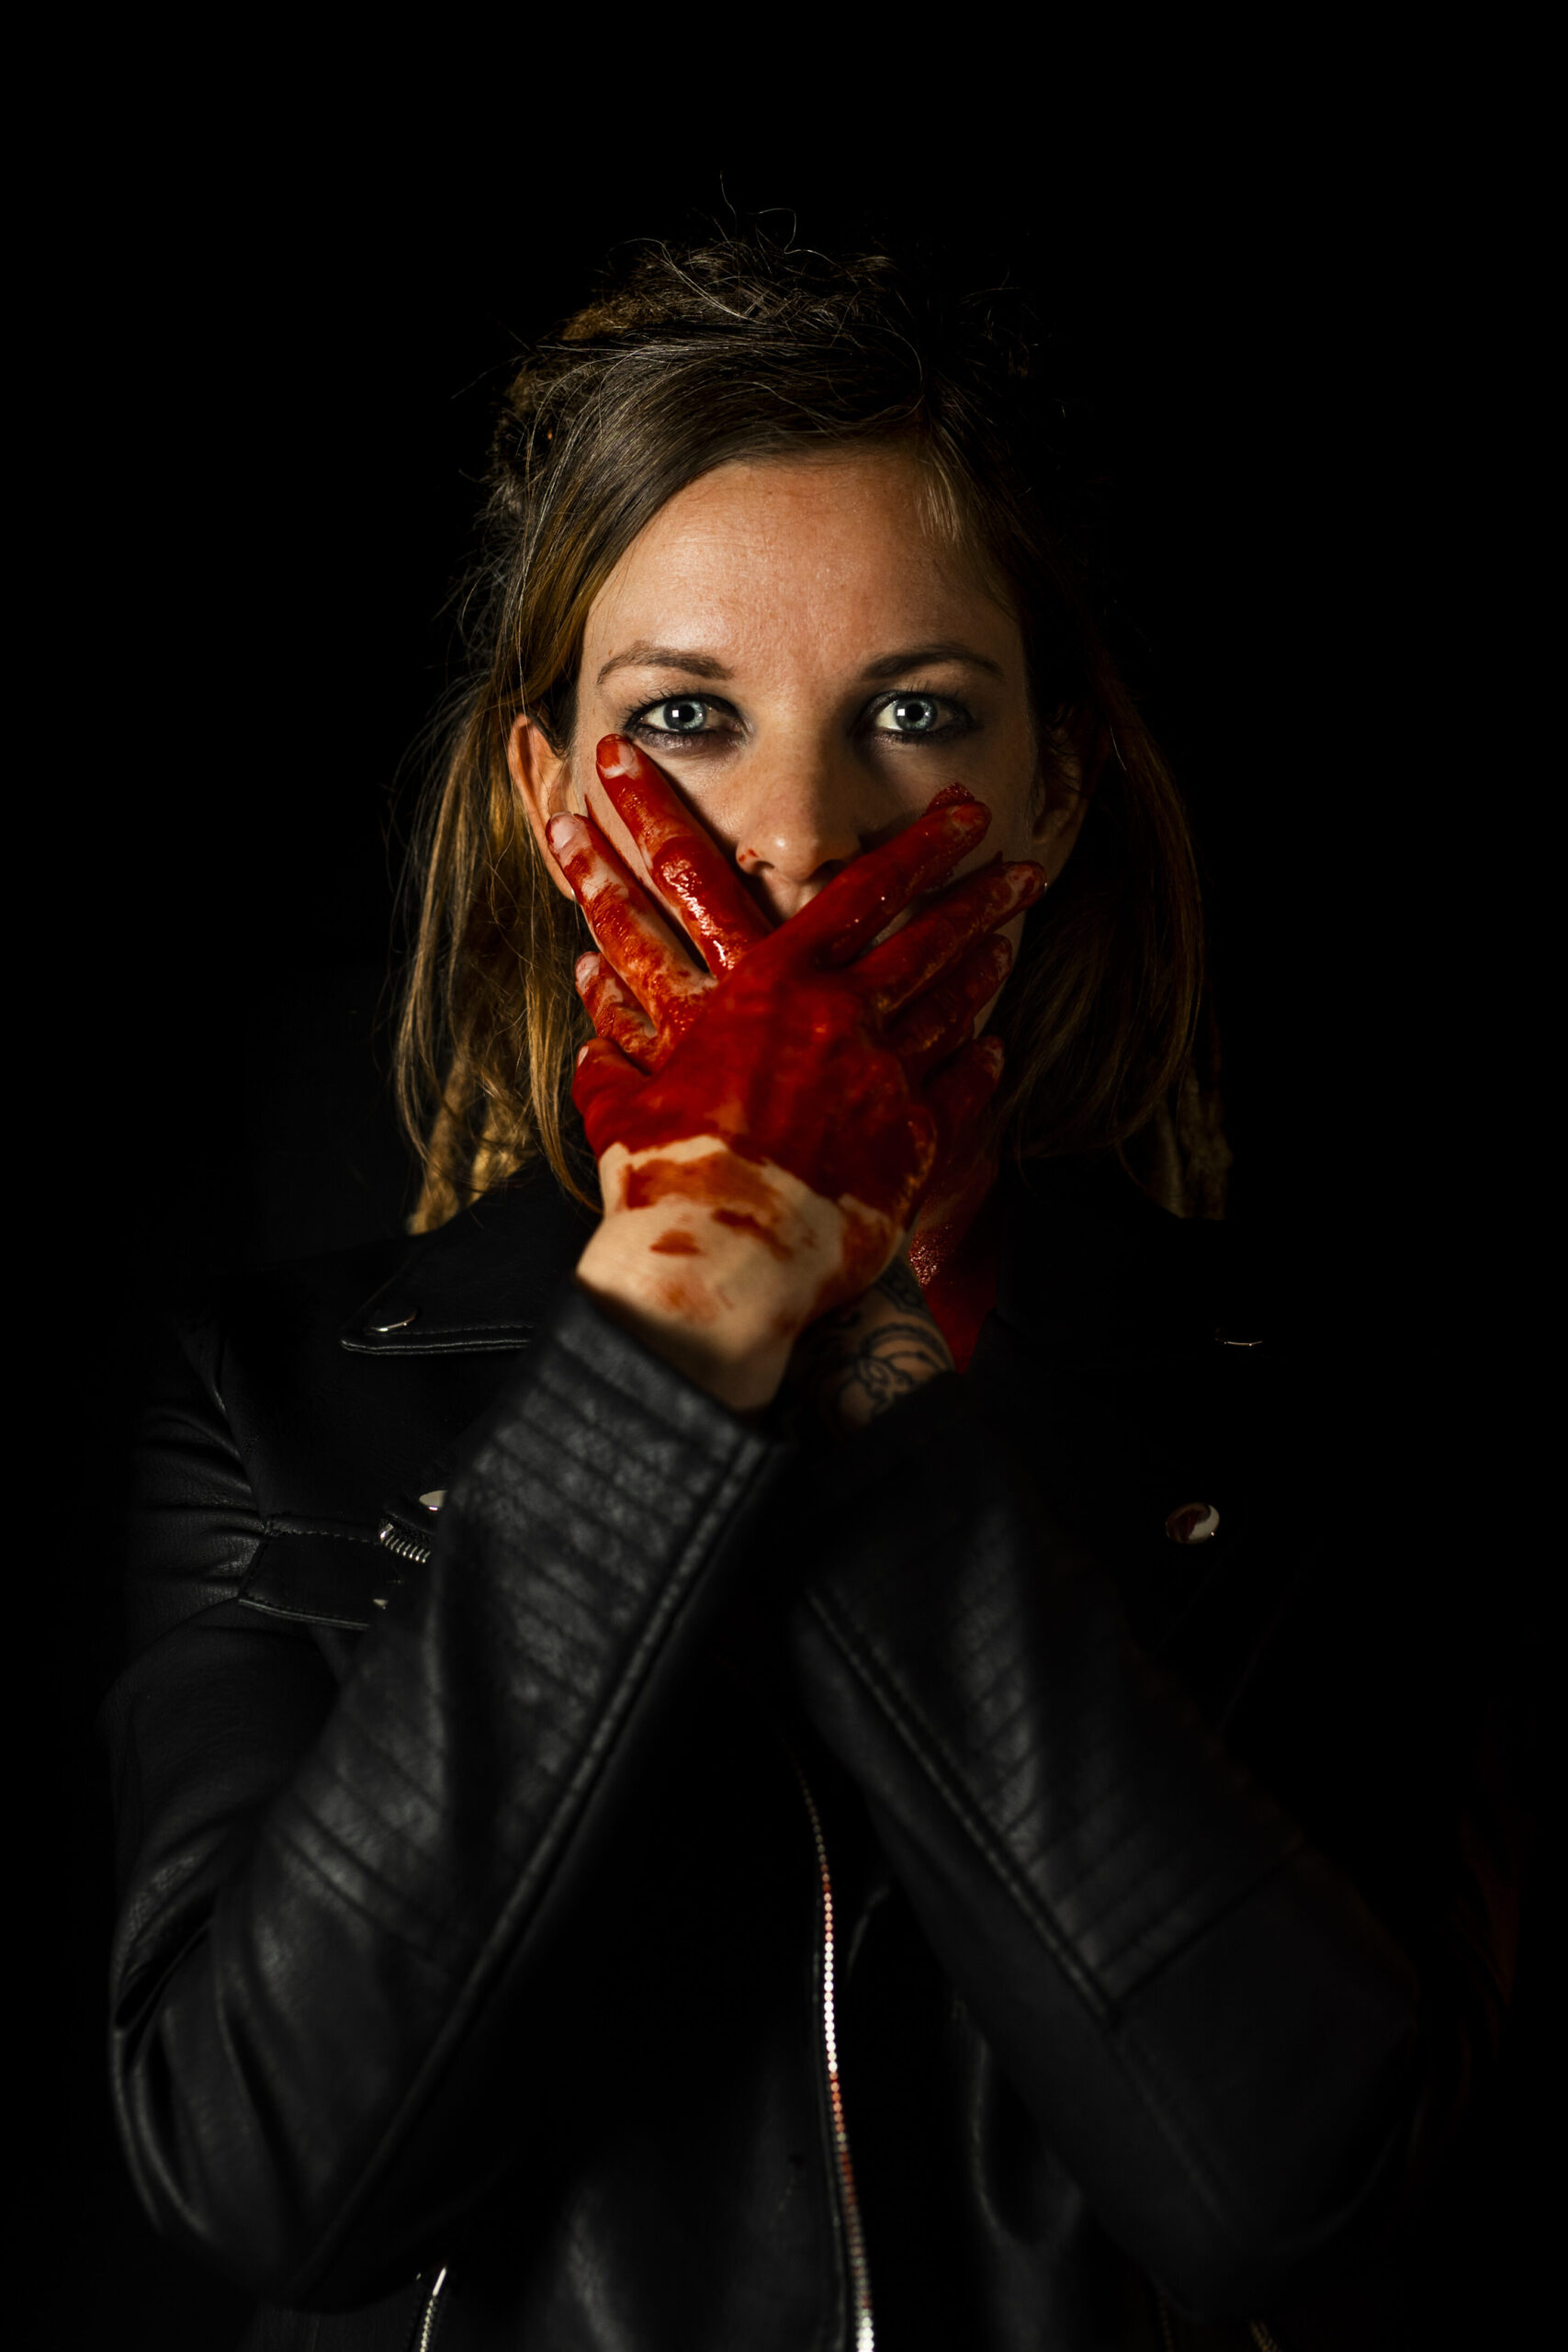 Fashionfotografie, Fashion, Fotograf Luzern, Blood on my hands